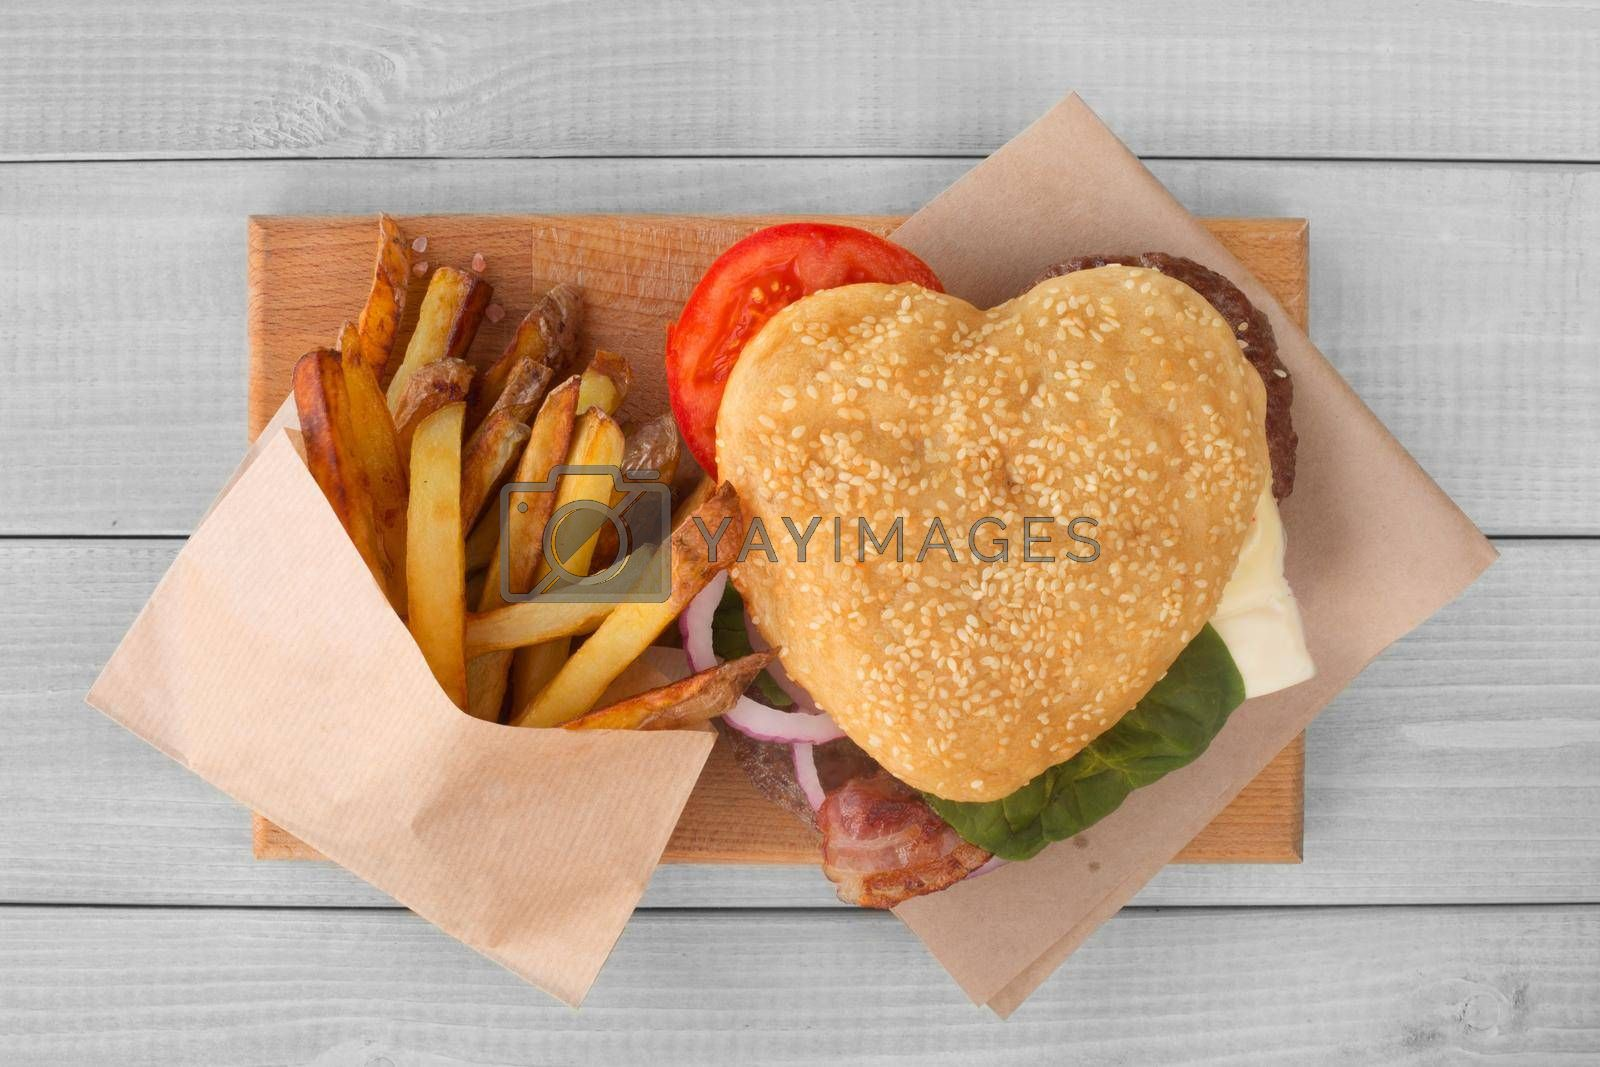 Heart shape love hamburger and french fries, burger fast food concept, Valentines day surprise dinner, wooden background, top view flat lay